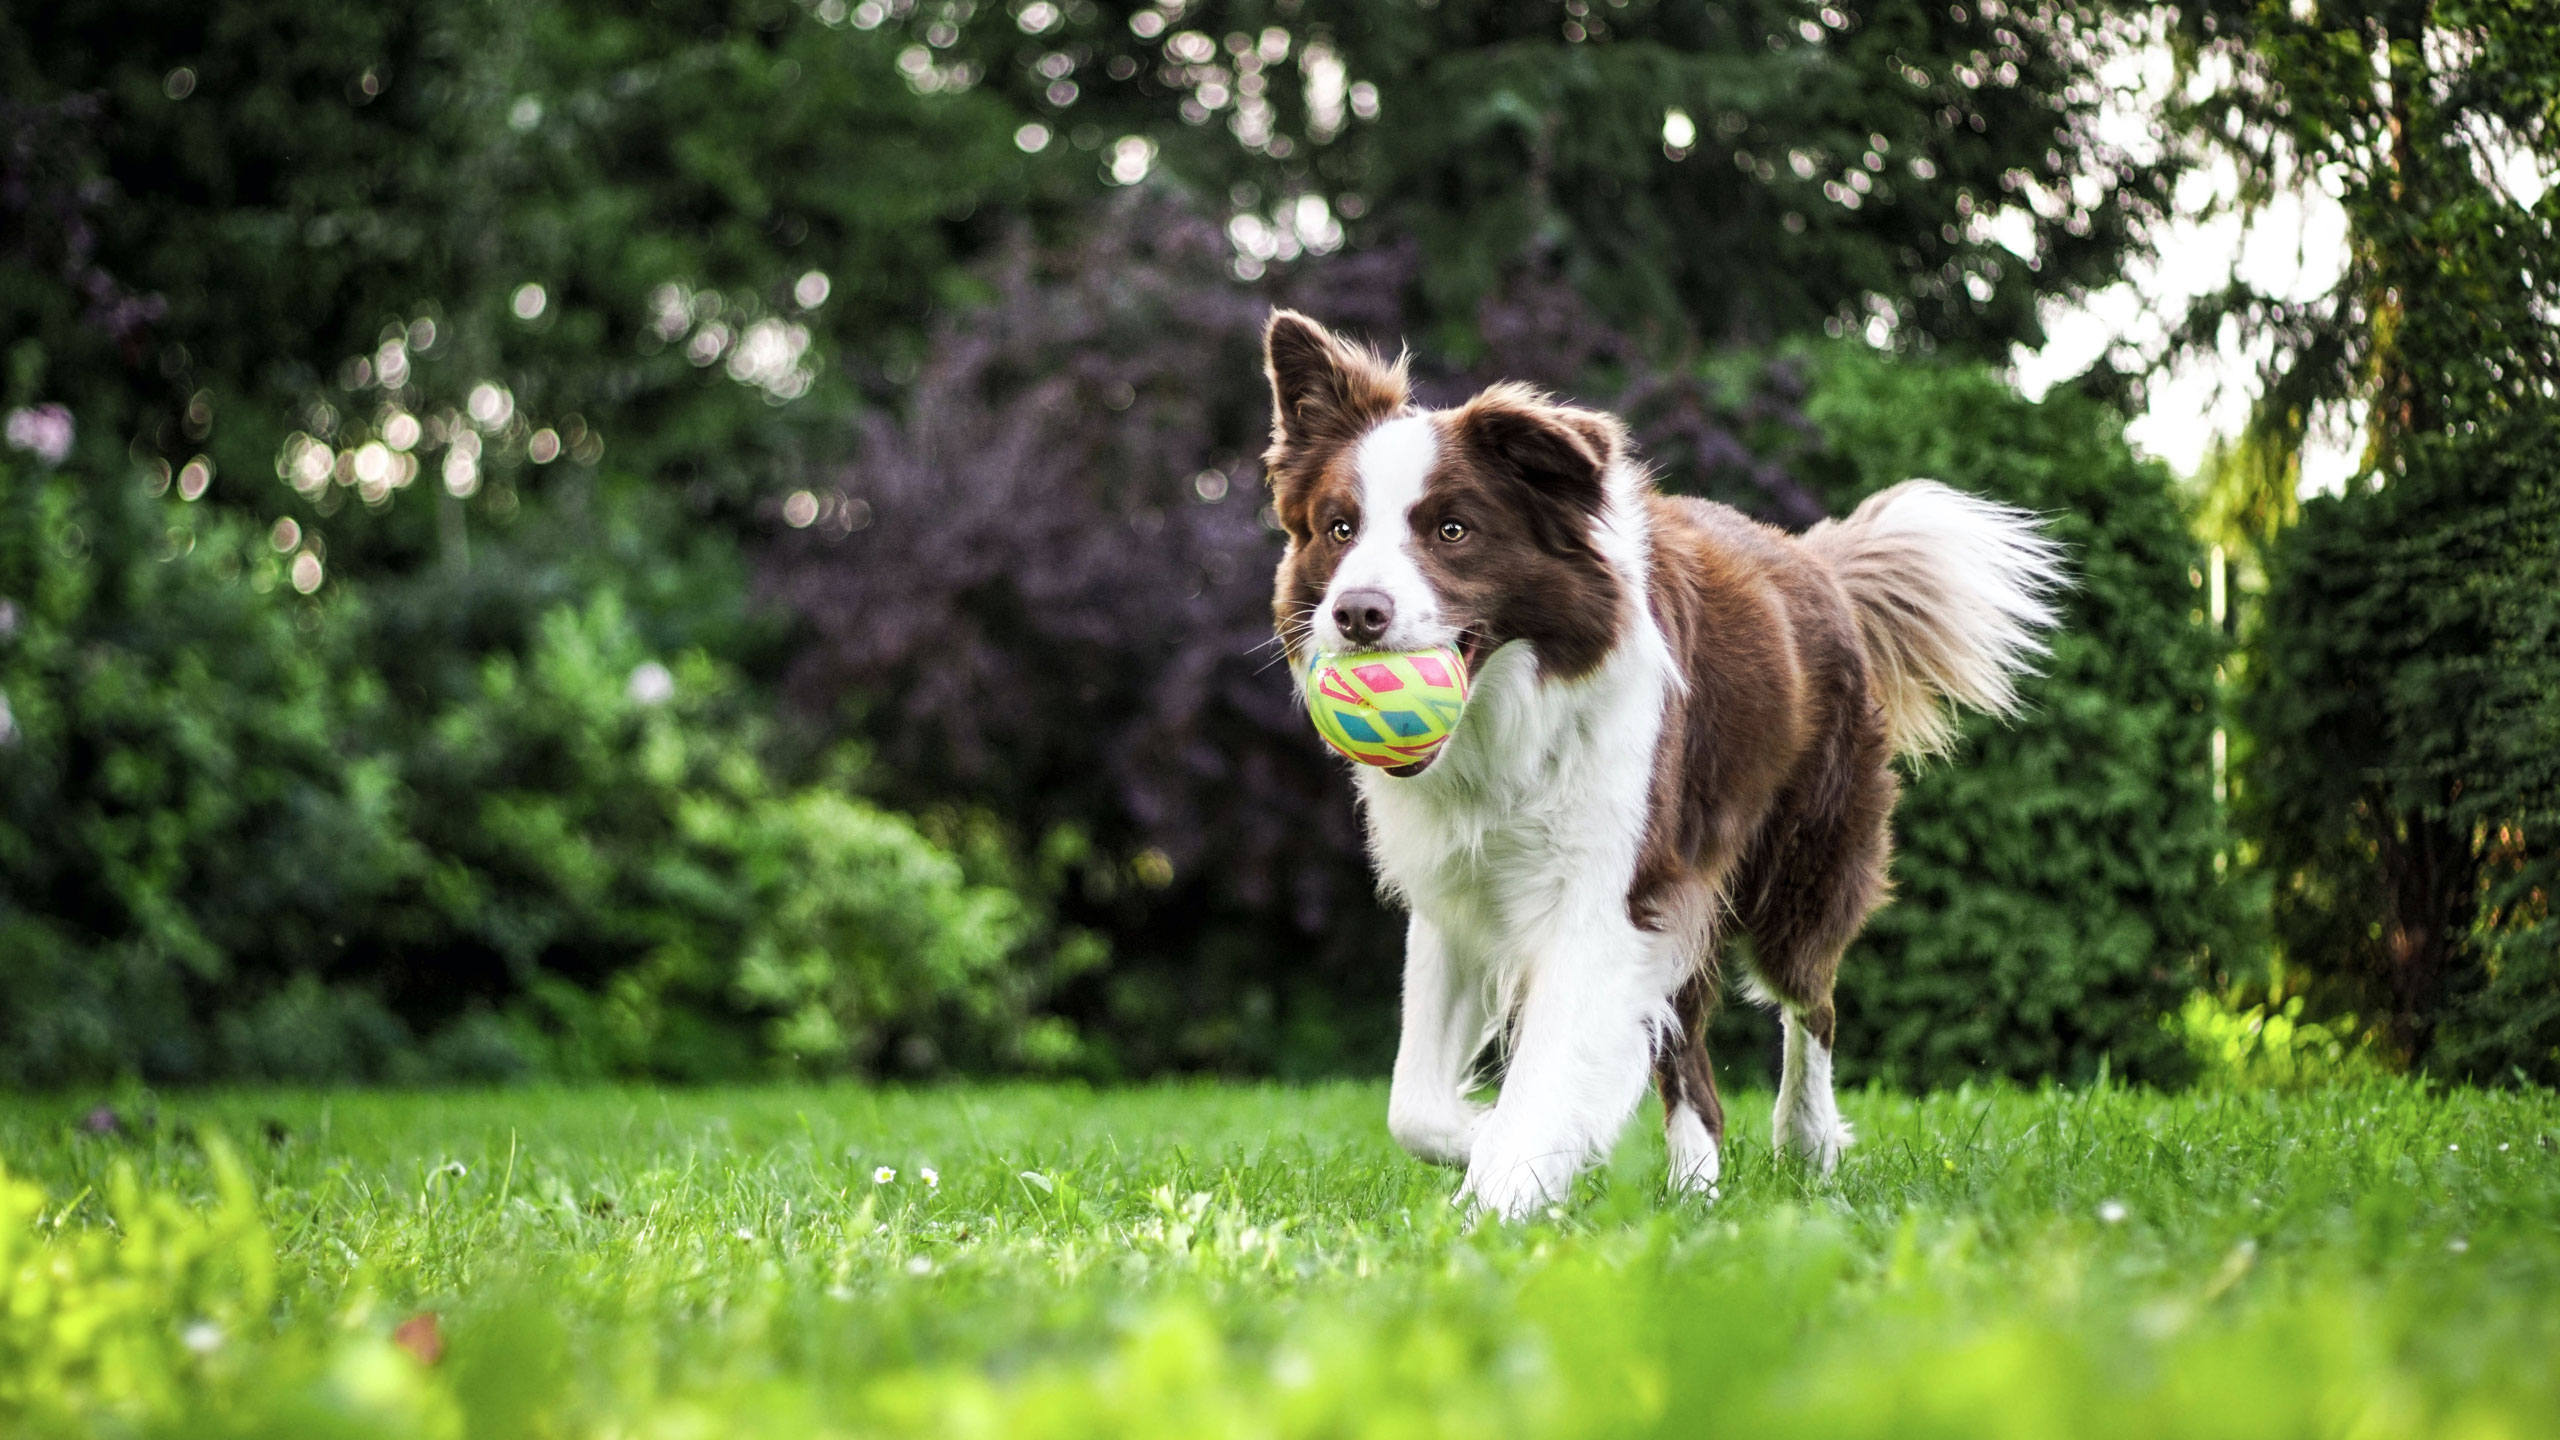 Dog running with ball in grassy field